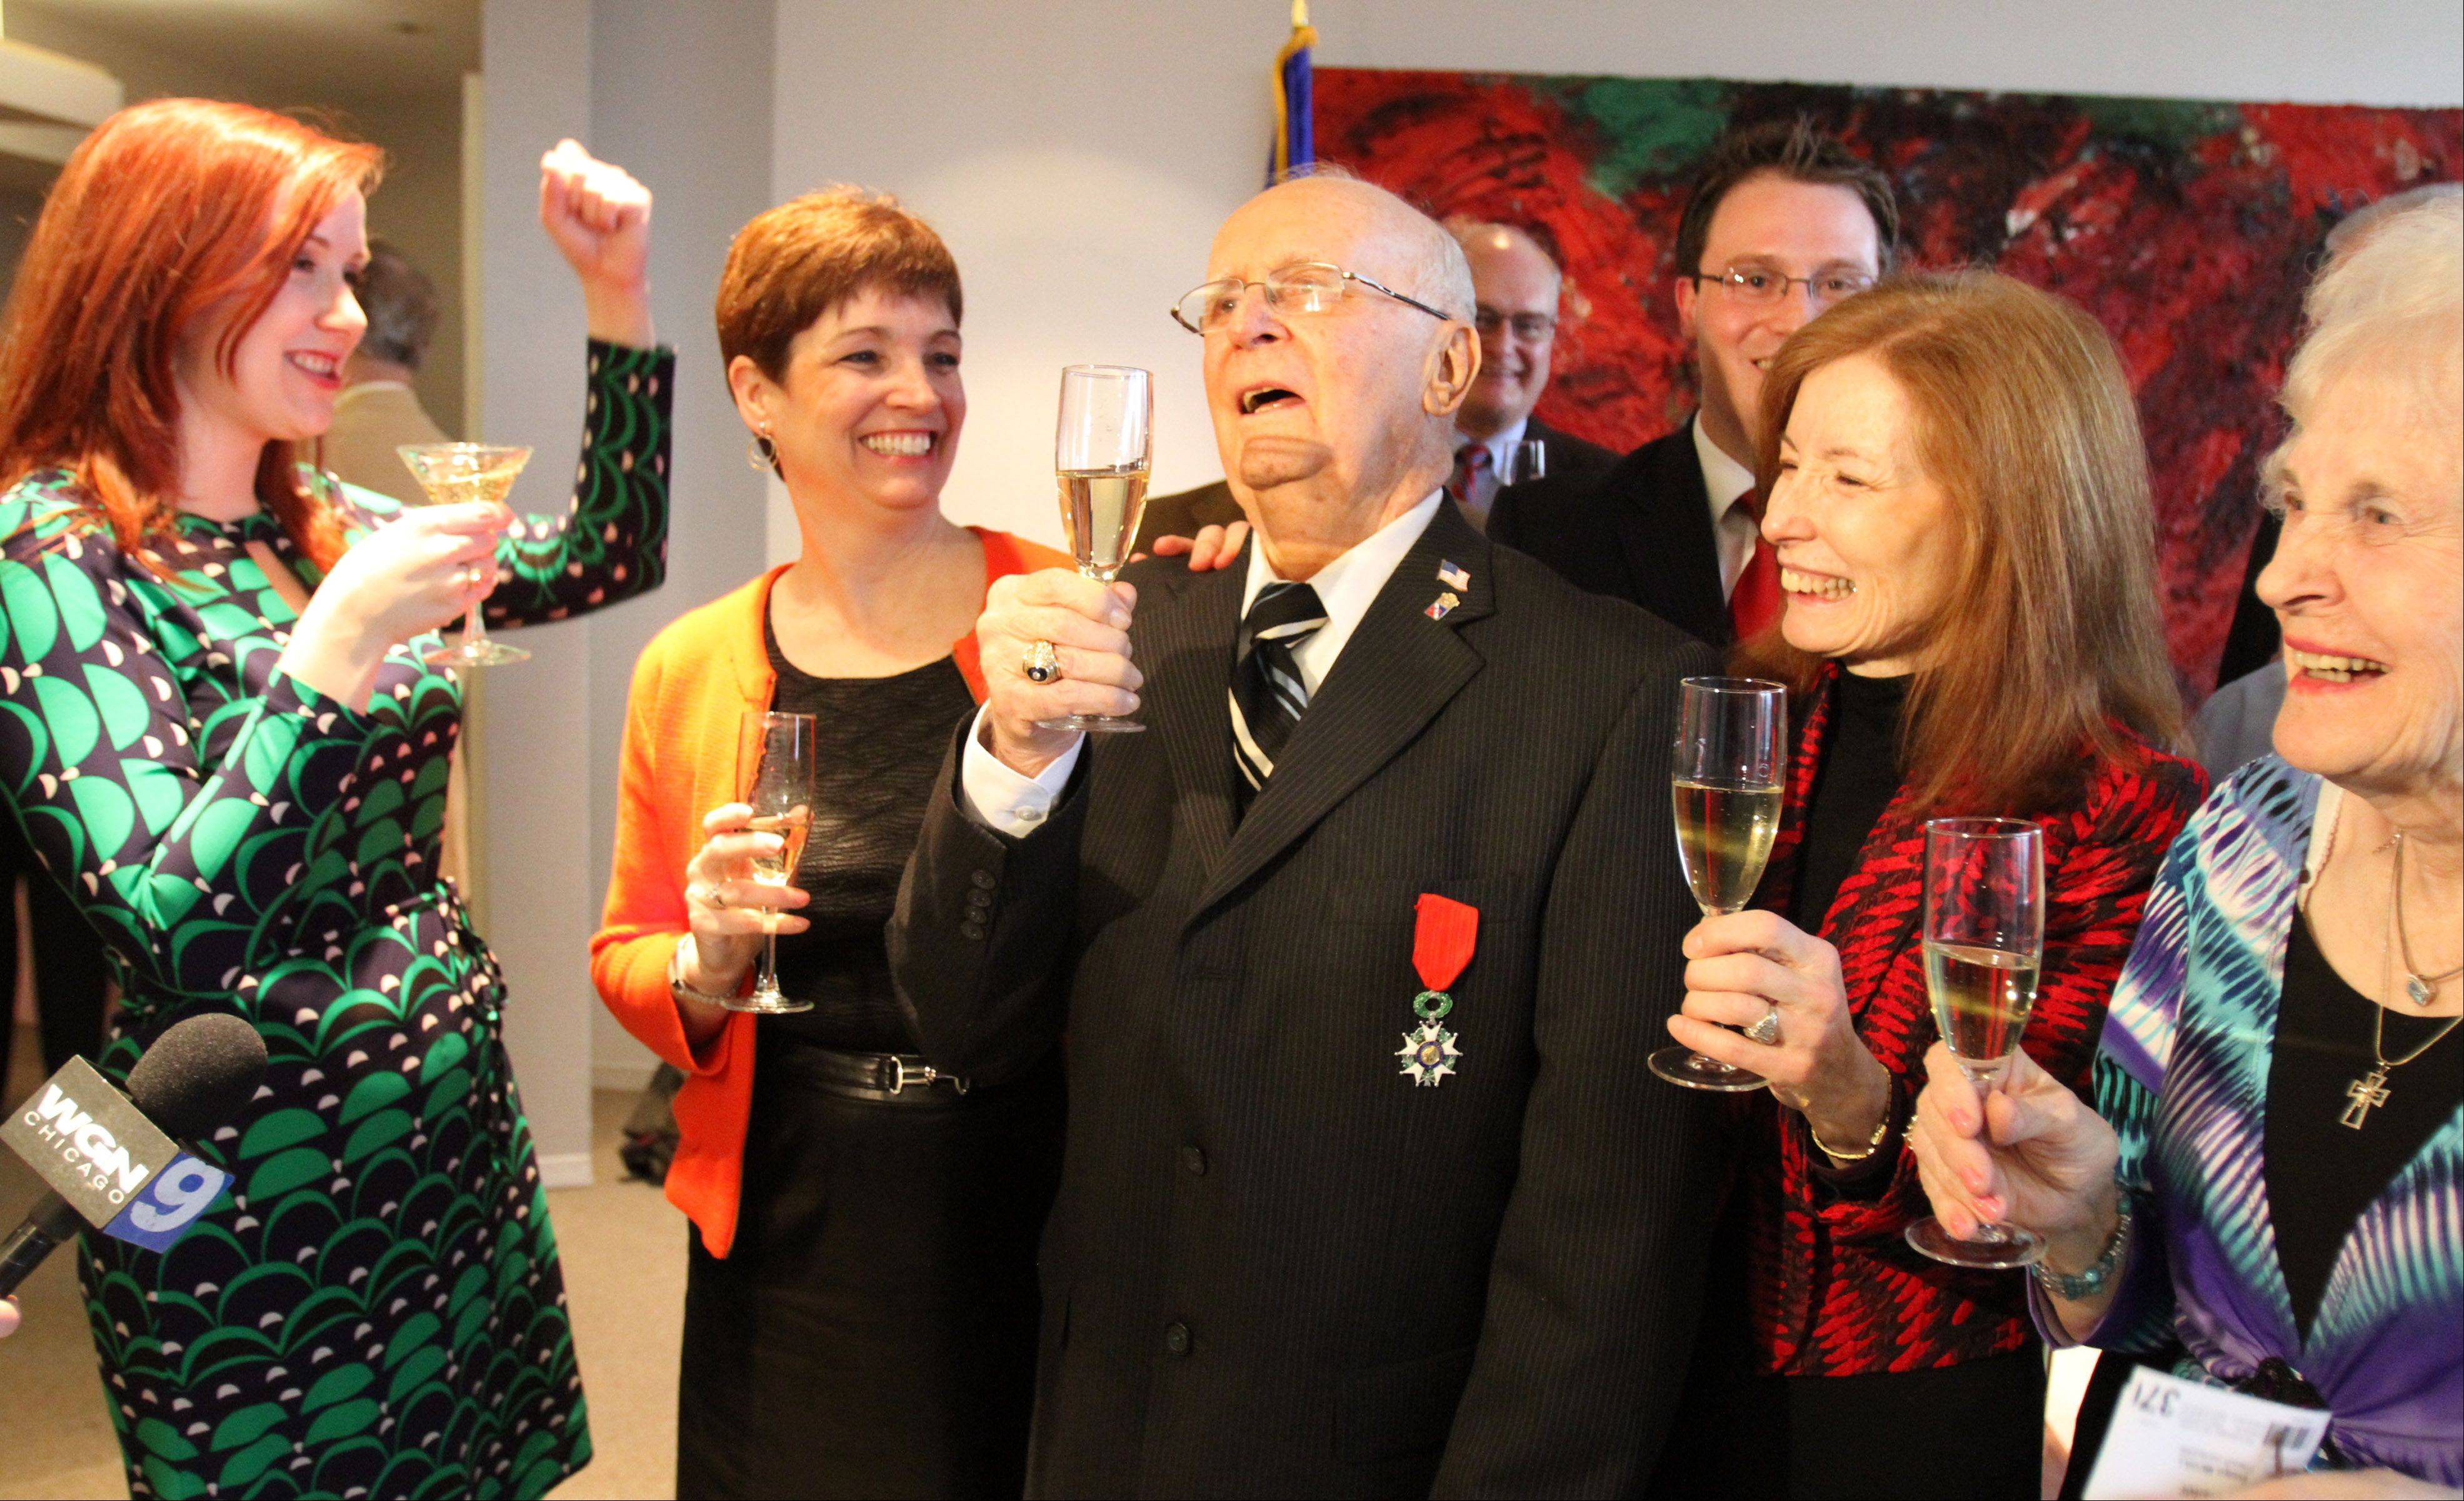 Jim Butz of Schaumburg and his family, including granddaughter Kerry Butz of Elk Grove Village at far left, toast with champagne after he received the French Legion of Honor medal Friday at French Consulate in Chicago.